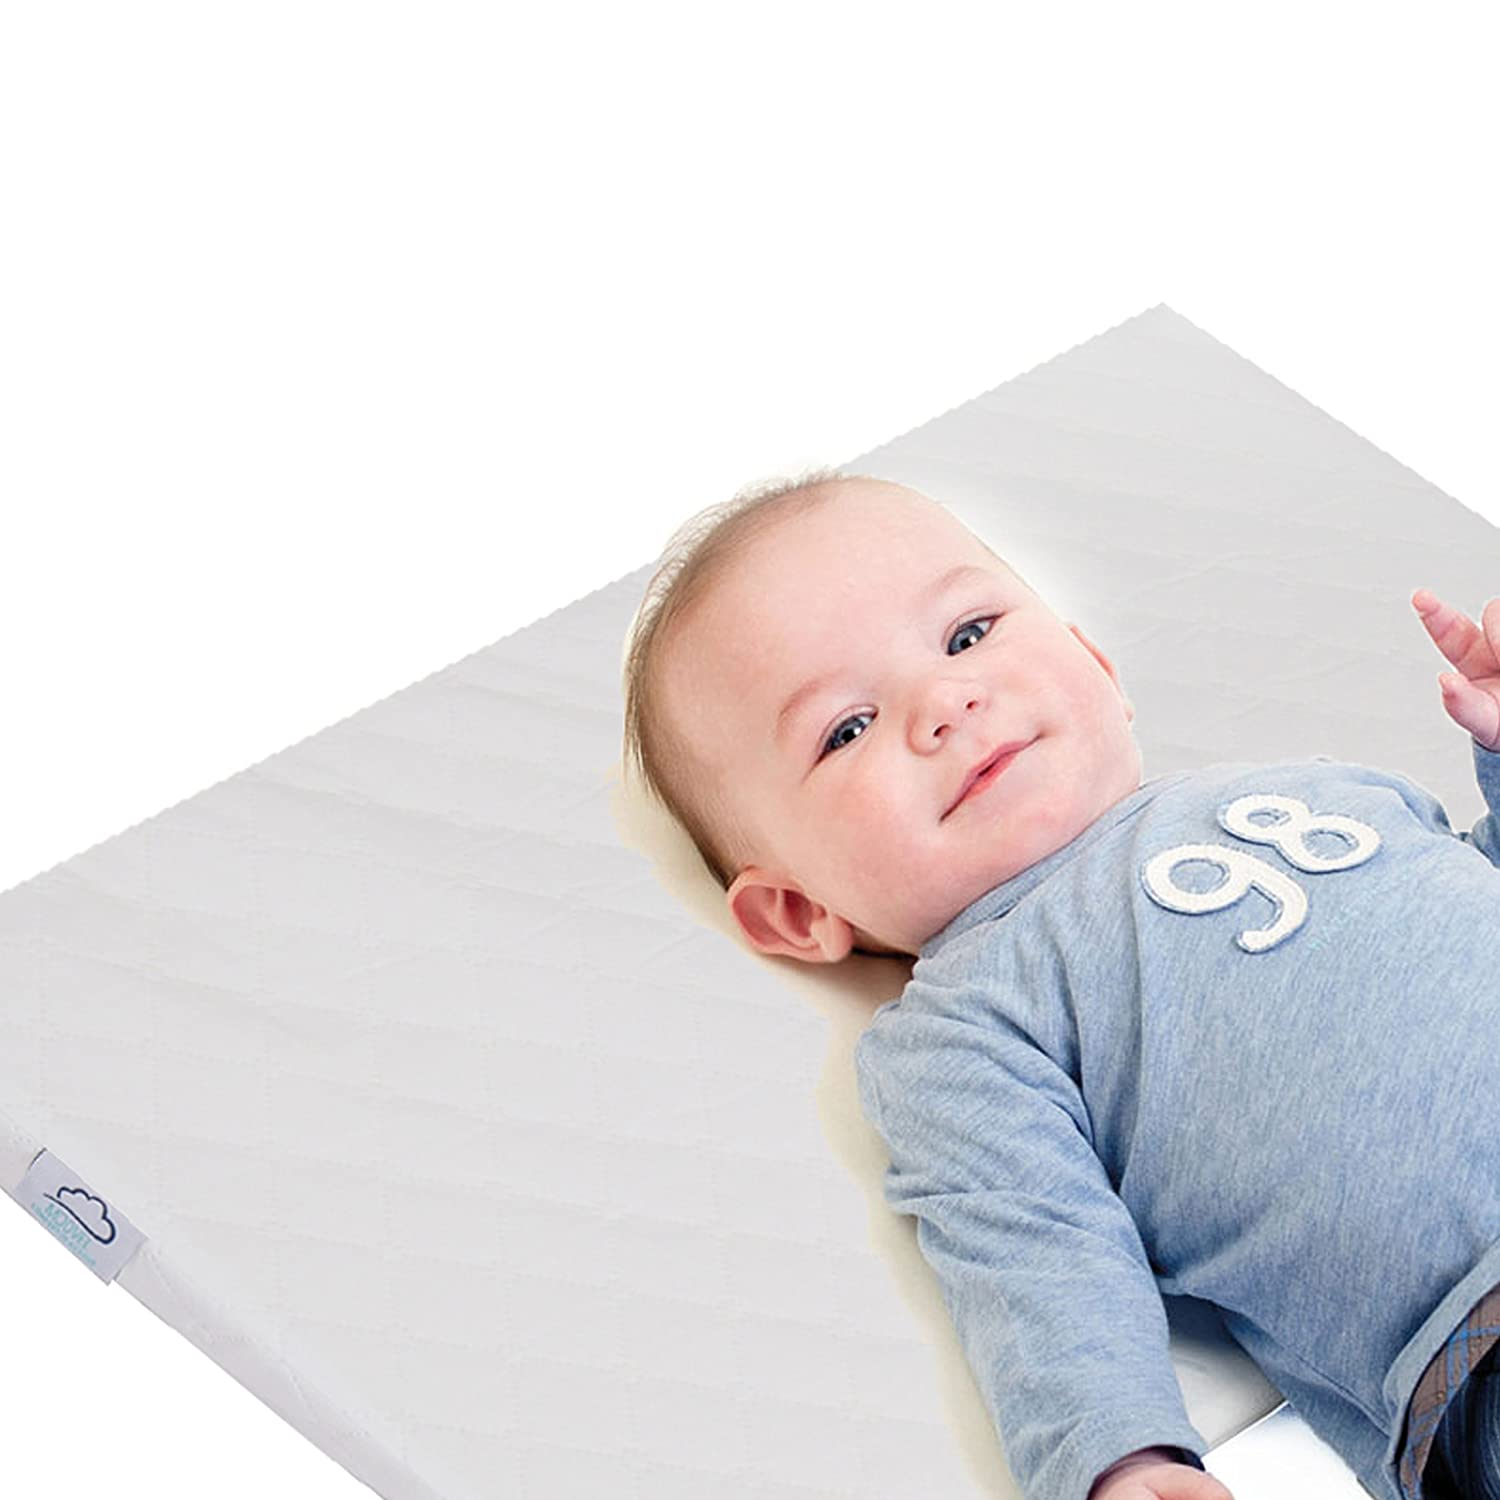 Modvel Crib Wedge Pillow – Sleep Positioner for Newborn Babies, Infants and Toddlers, Non-Slip Universal Fit with Baby Beds, Waterproof Removable Cover - with Anti-Skid Baby Socks (MV-127)